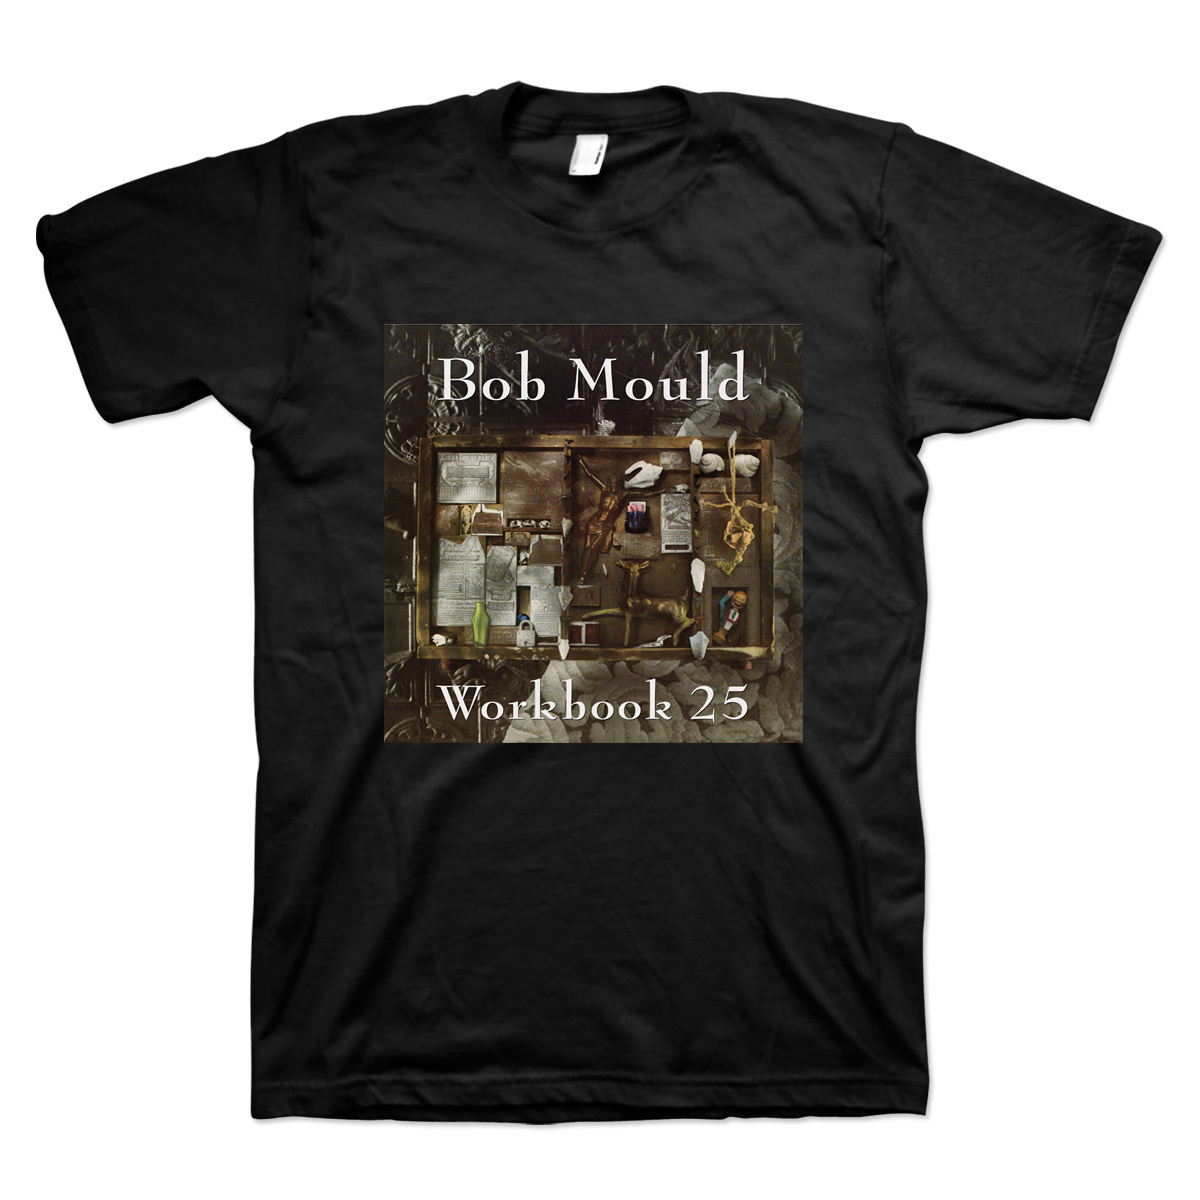 Bob Mould - Workbook 25 Unisex T-Shirt